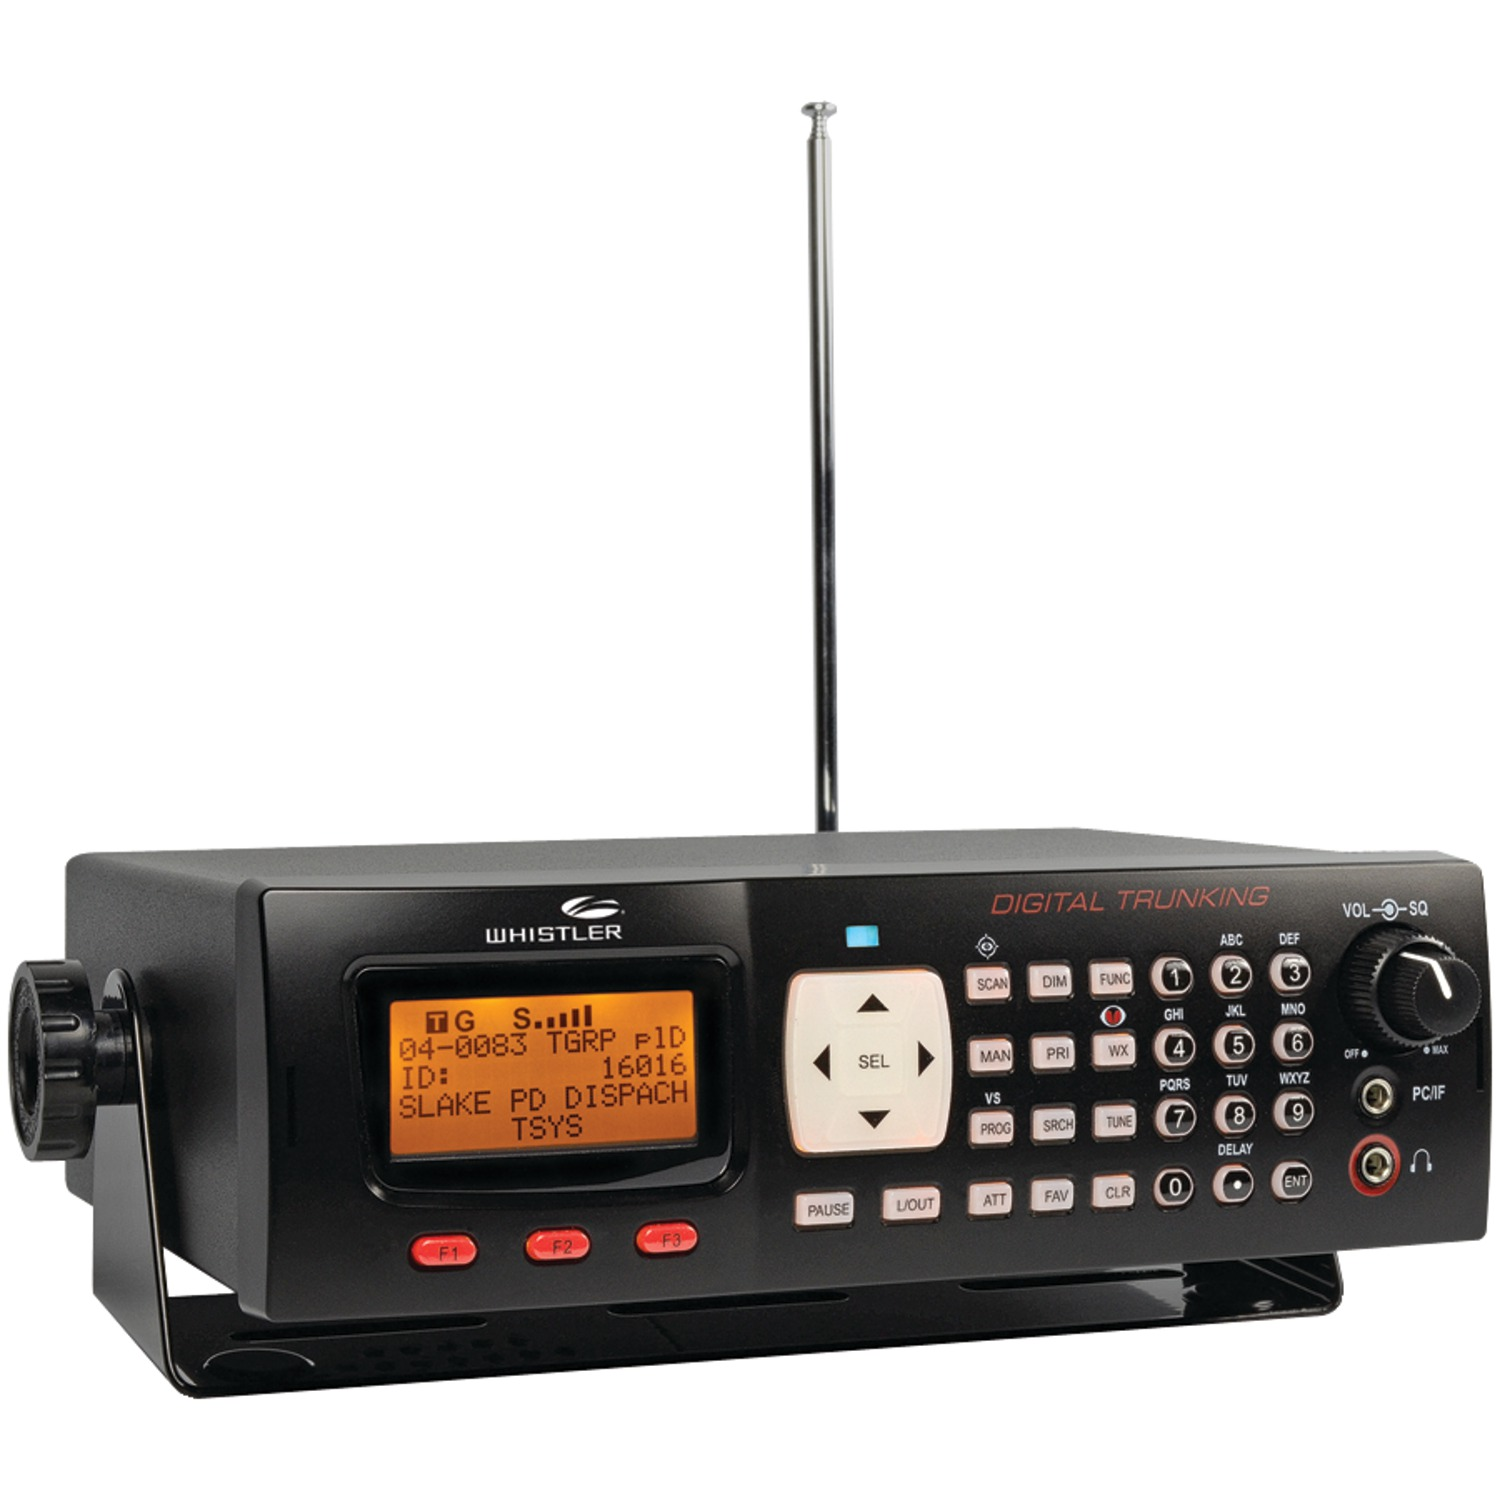 Whistler WS1065 Digital Desktop Mobile Radio Scanner by Whistler